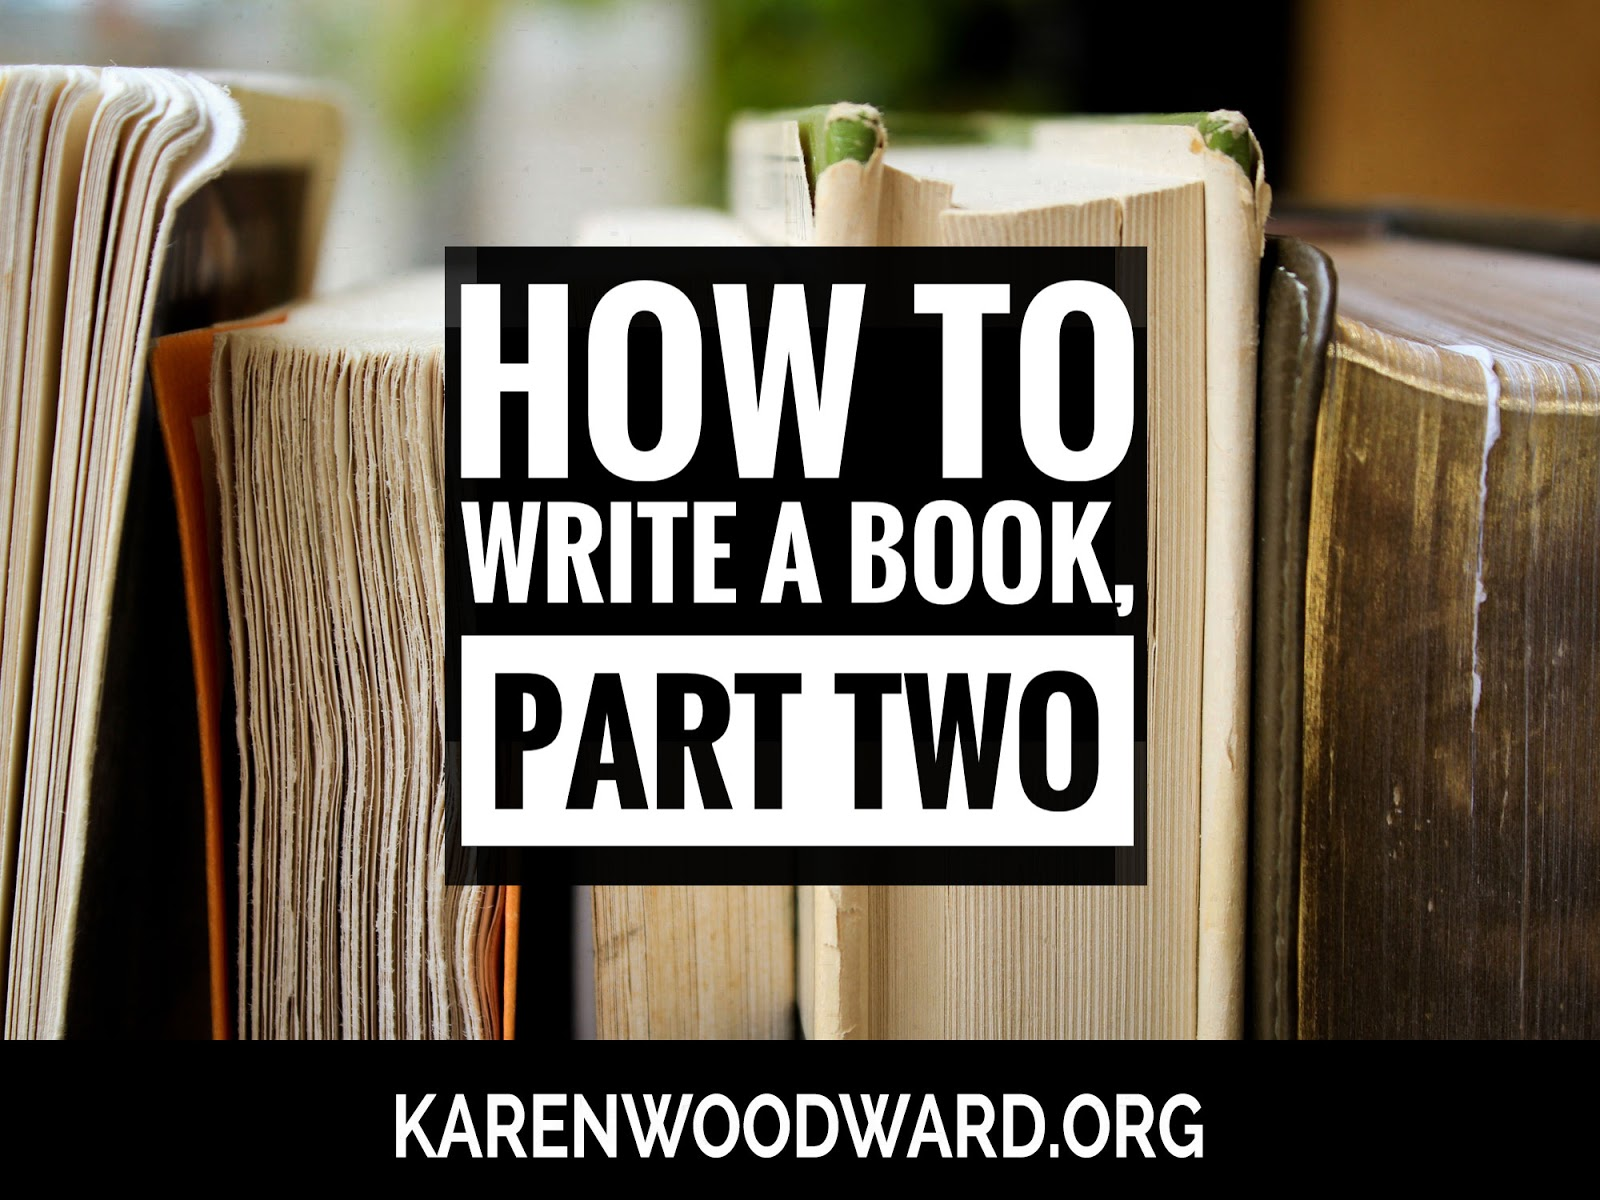 How to Write a Book, Part Two